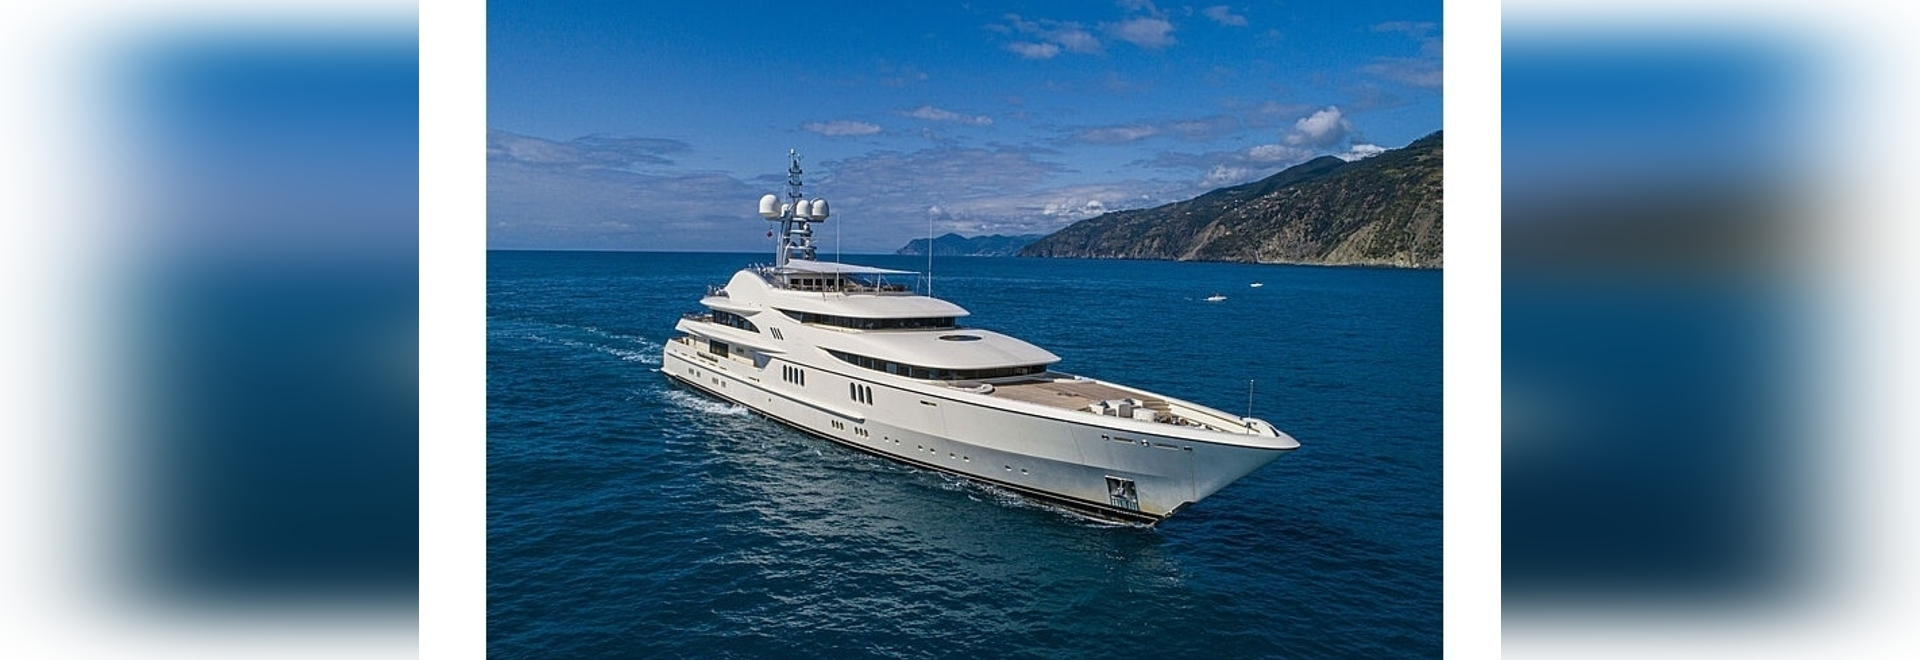 67m Feadship yacht Anna I is looking for a new owner